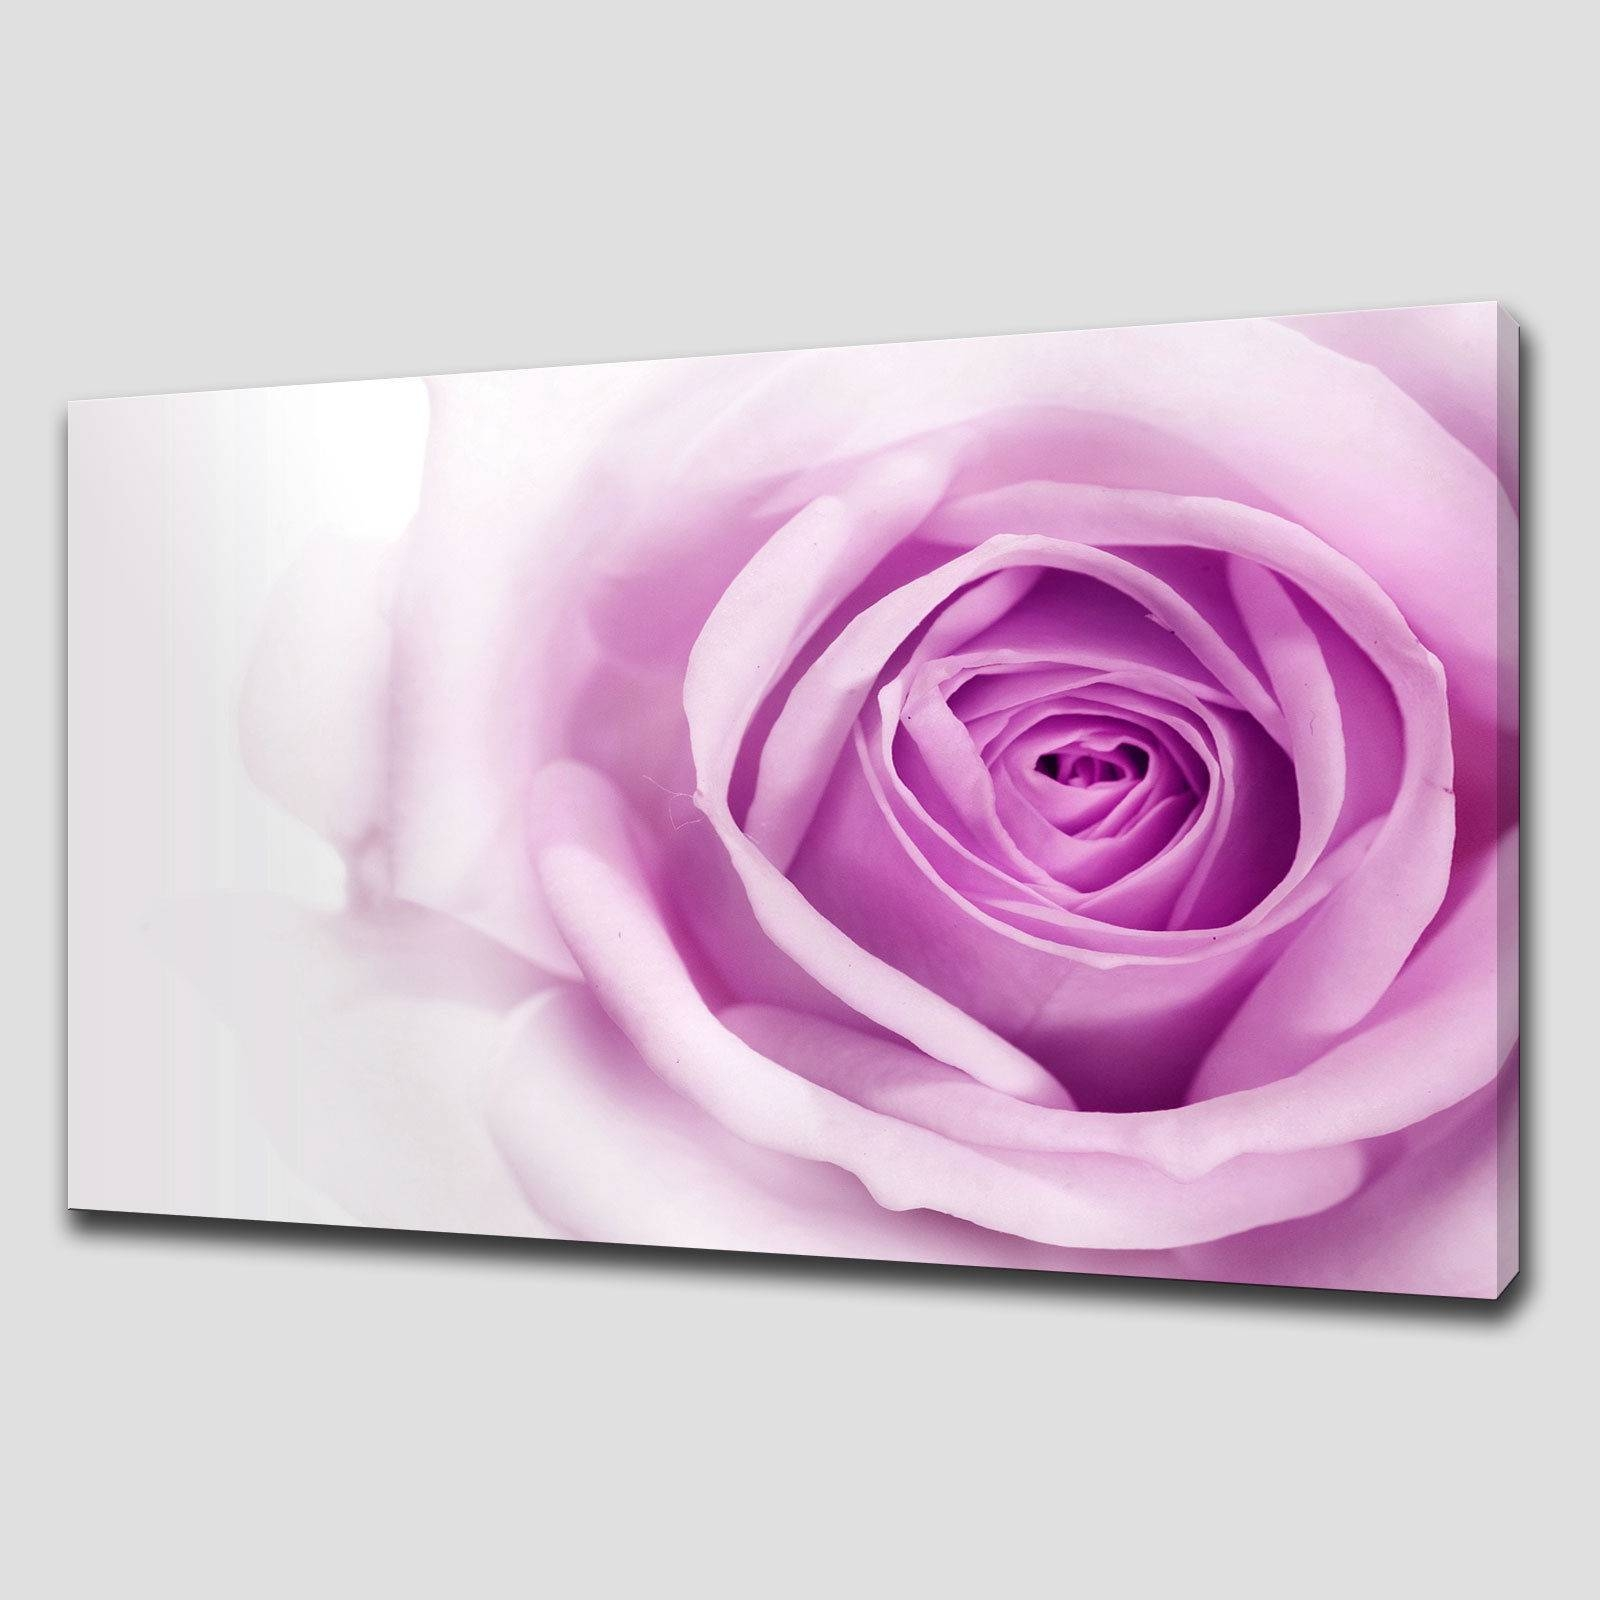 Wall Art Designs: Decor Red Rose Canvas Wall Art Large Oil Intended For Newest Red Rose Wall Art (View 14 of 20)